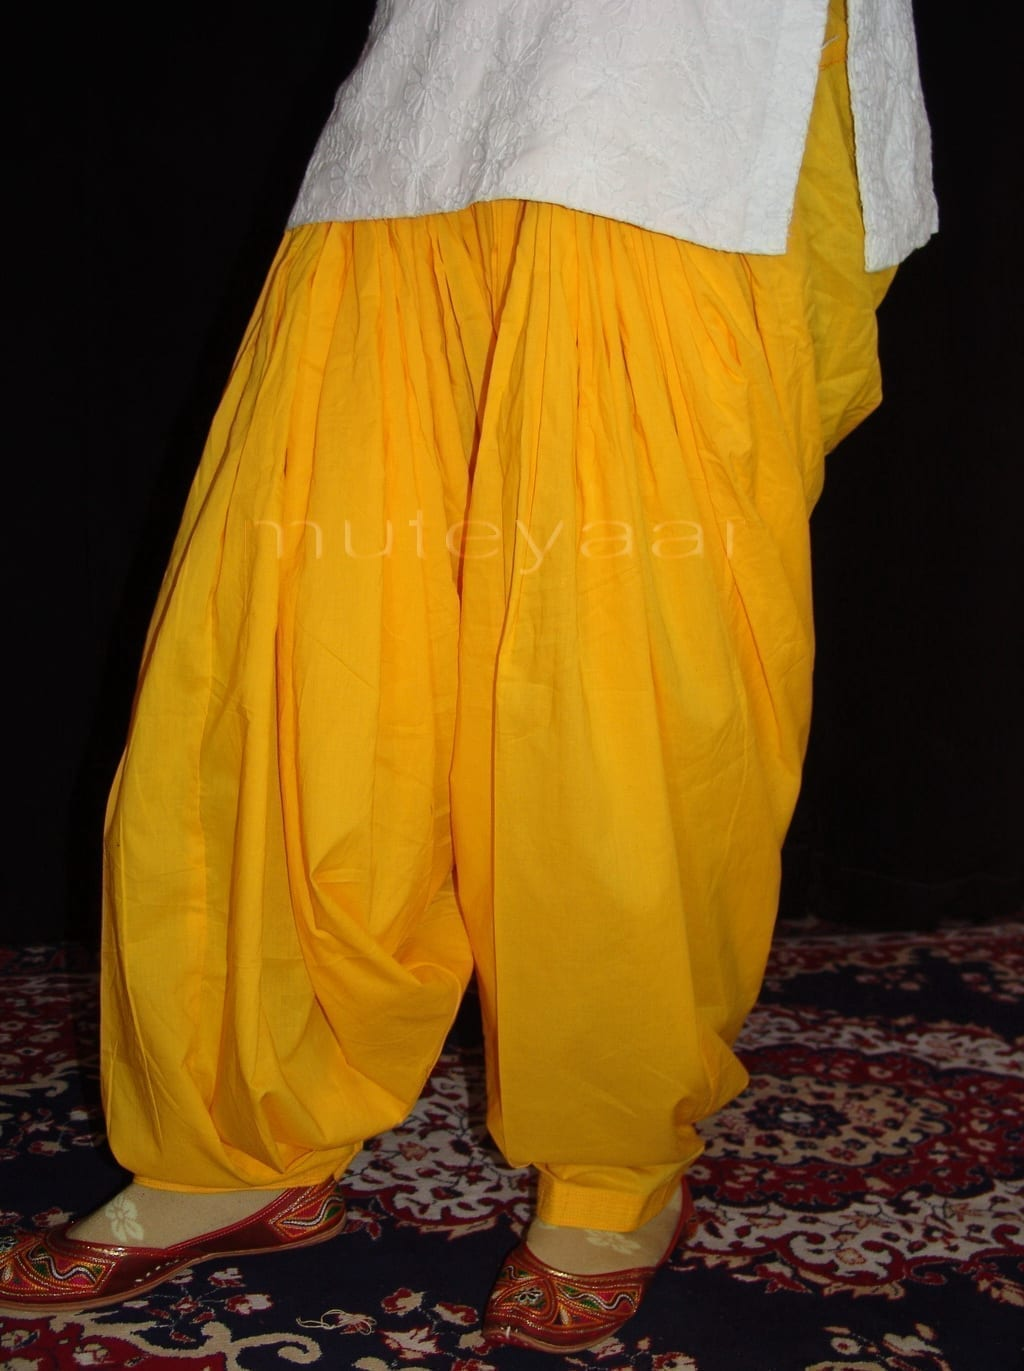 100% PURE COTTON YELLOW PATIALA PANTS from Patiala city !! 2